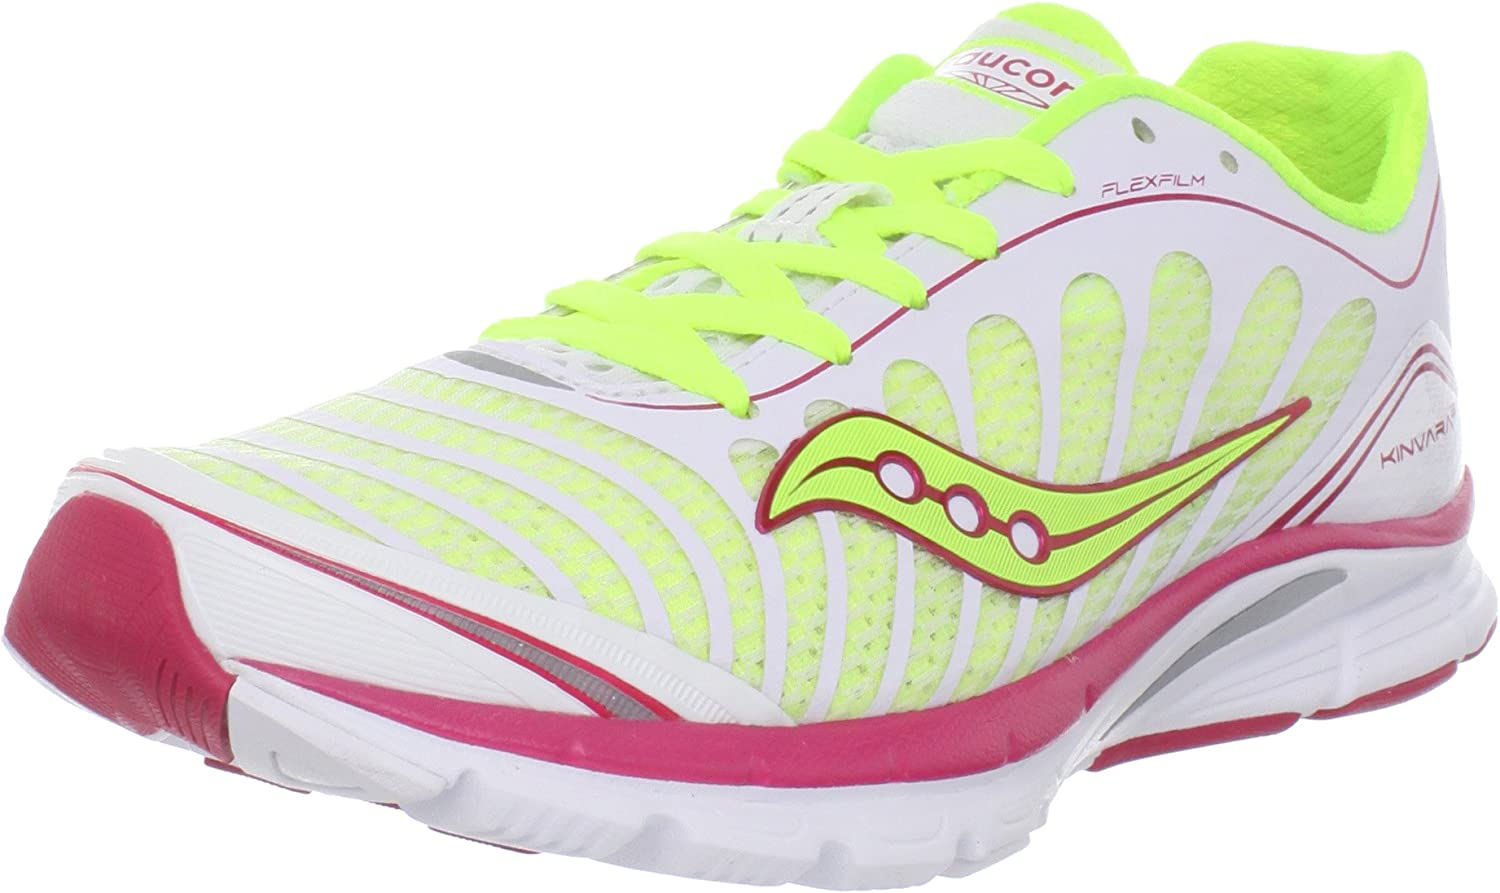 Saucony Women's Progrid Kinvara 3 Running shoes